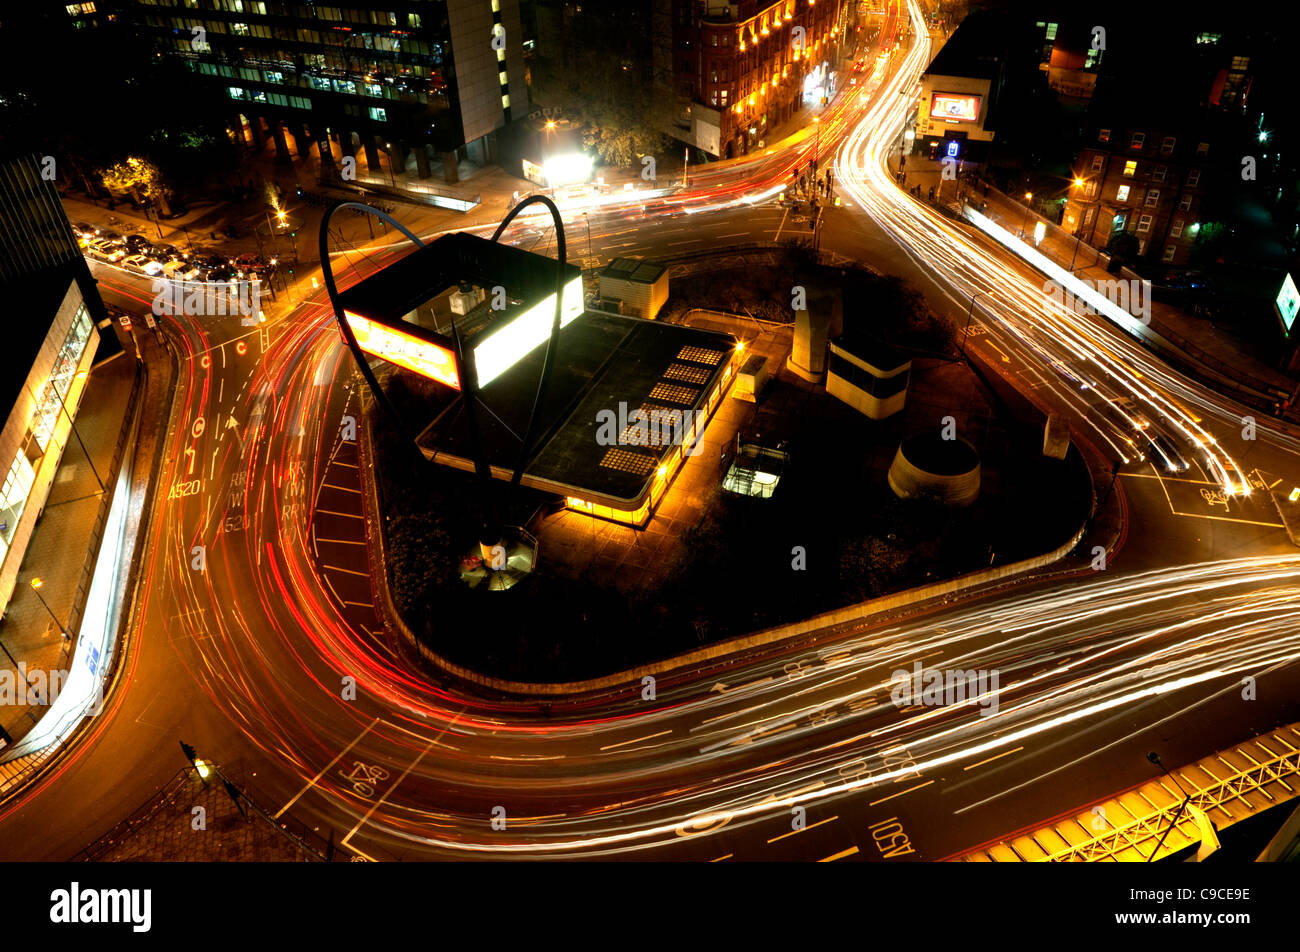 Old Street roundabout (The Silicon Roundabout), London during evening rush hour photographed from Bezier apartments - Stock Image